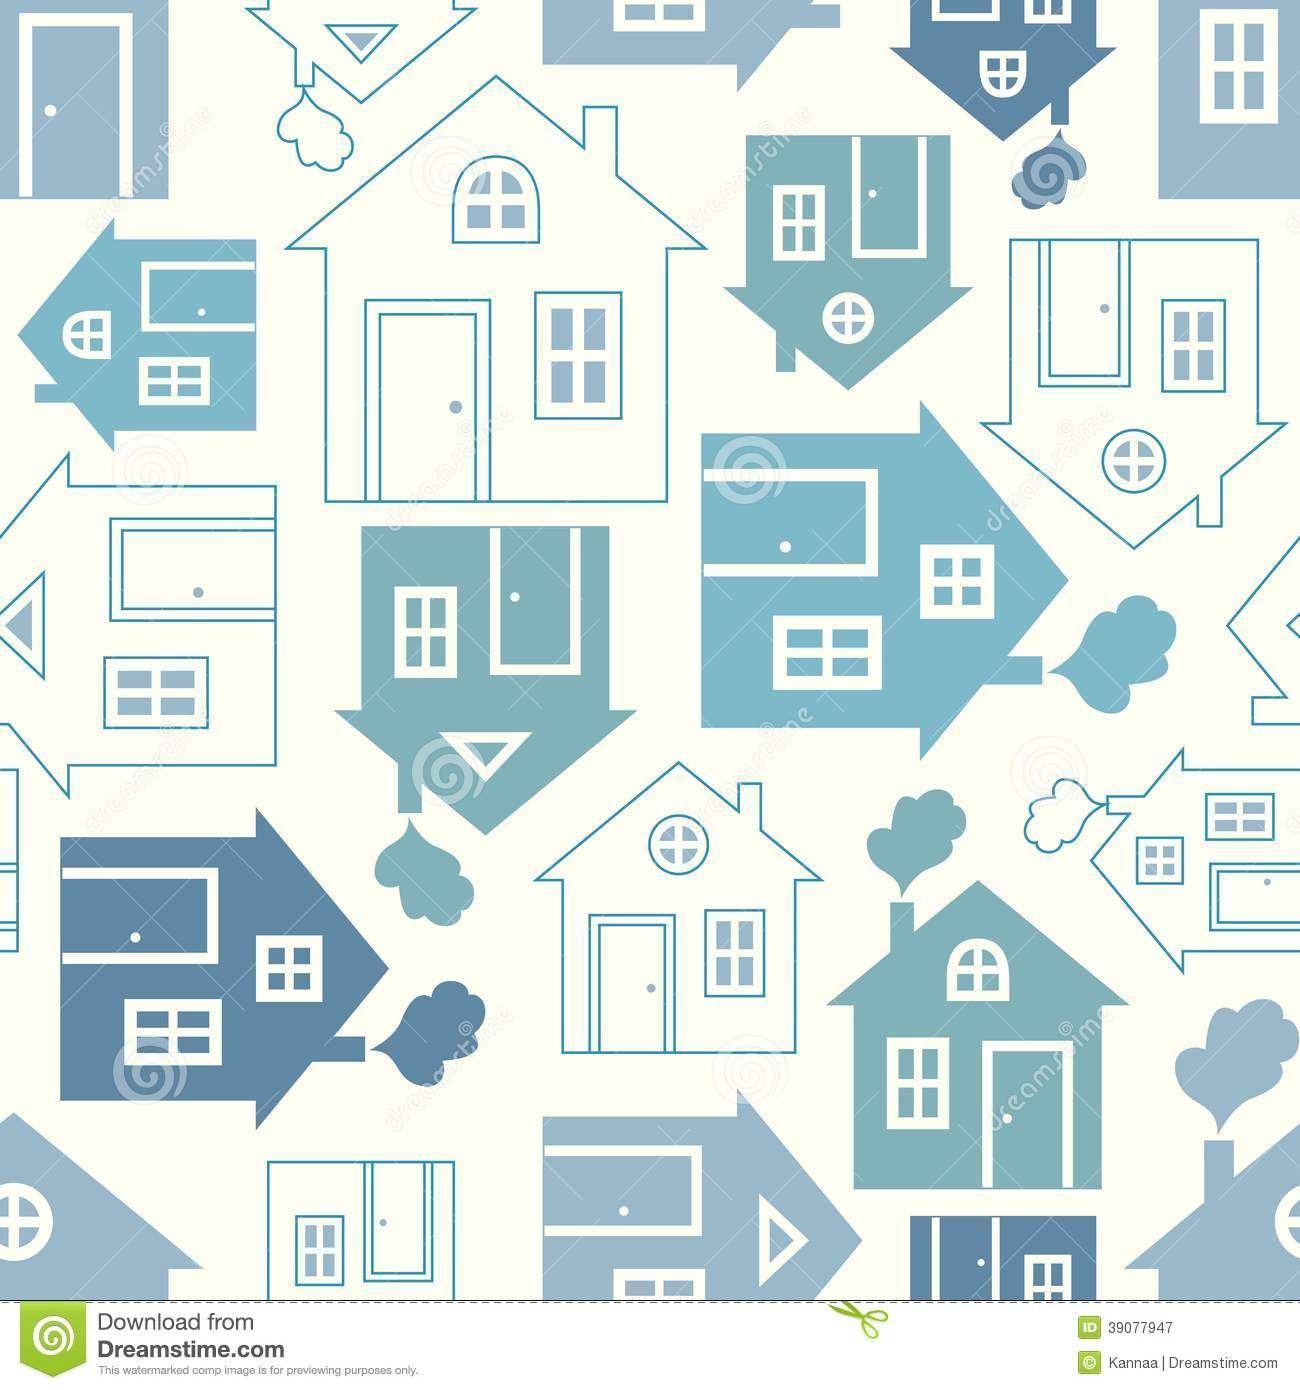 Download Free Sweet Home 3d Sweet Home 3d 4 1 Download: Home Sweet House Silhouette Stock Vector